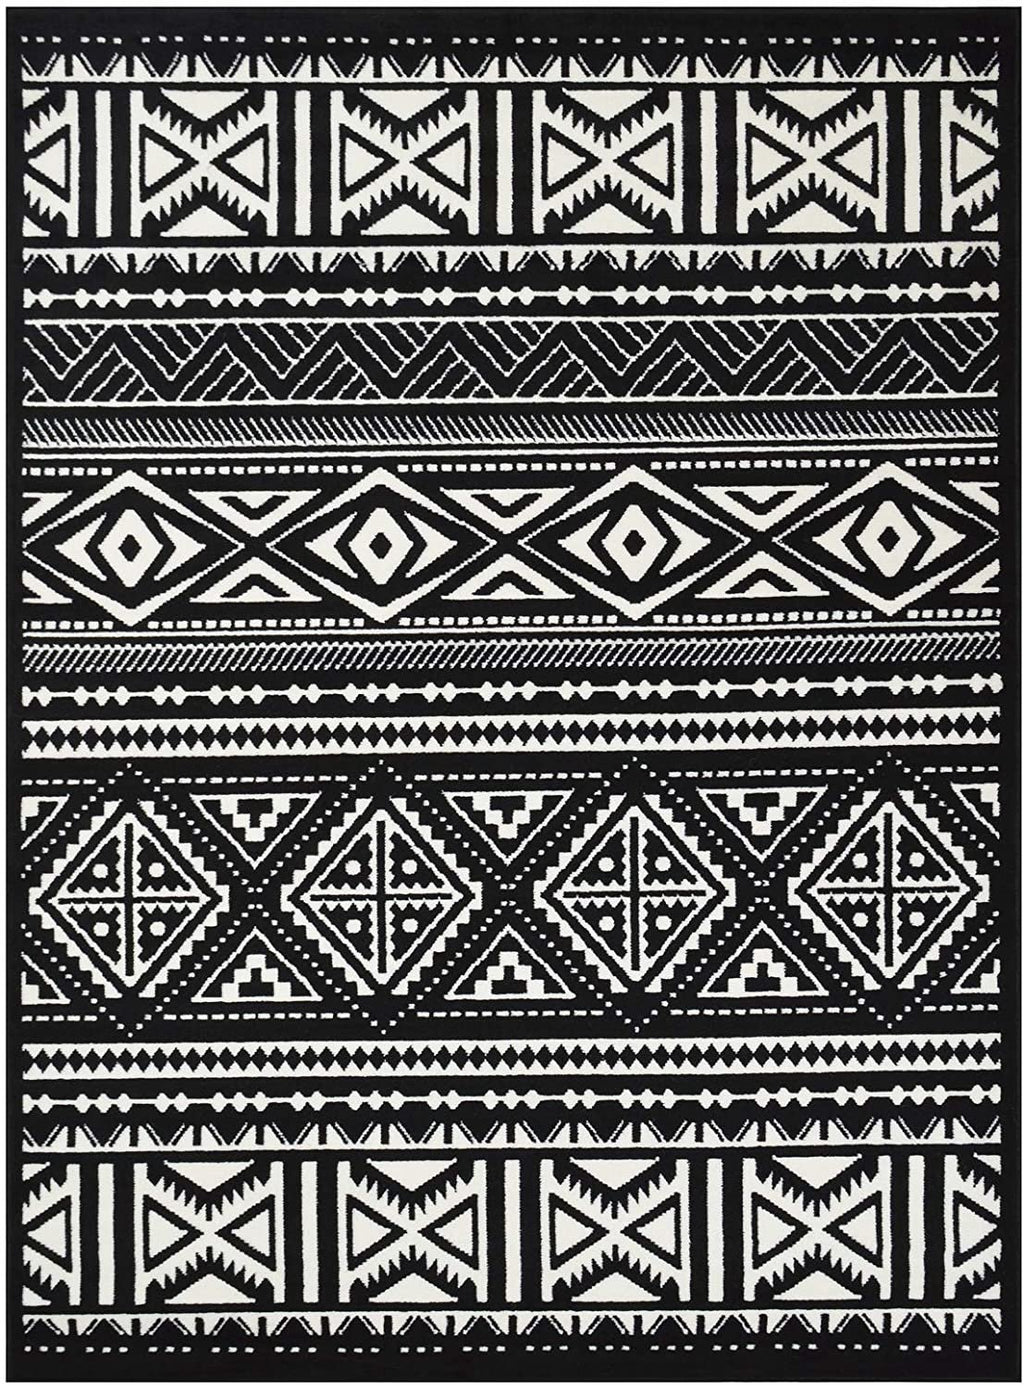 Southwestern Rug for Living Room Antiqued Trellis Black and White Area Rug Boho Décor Rugs for Bedroom